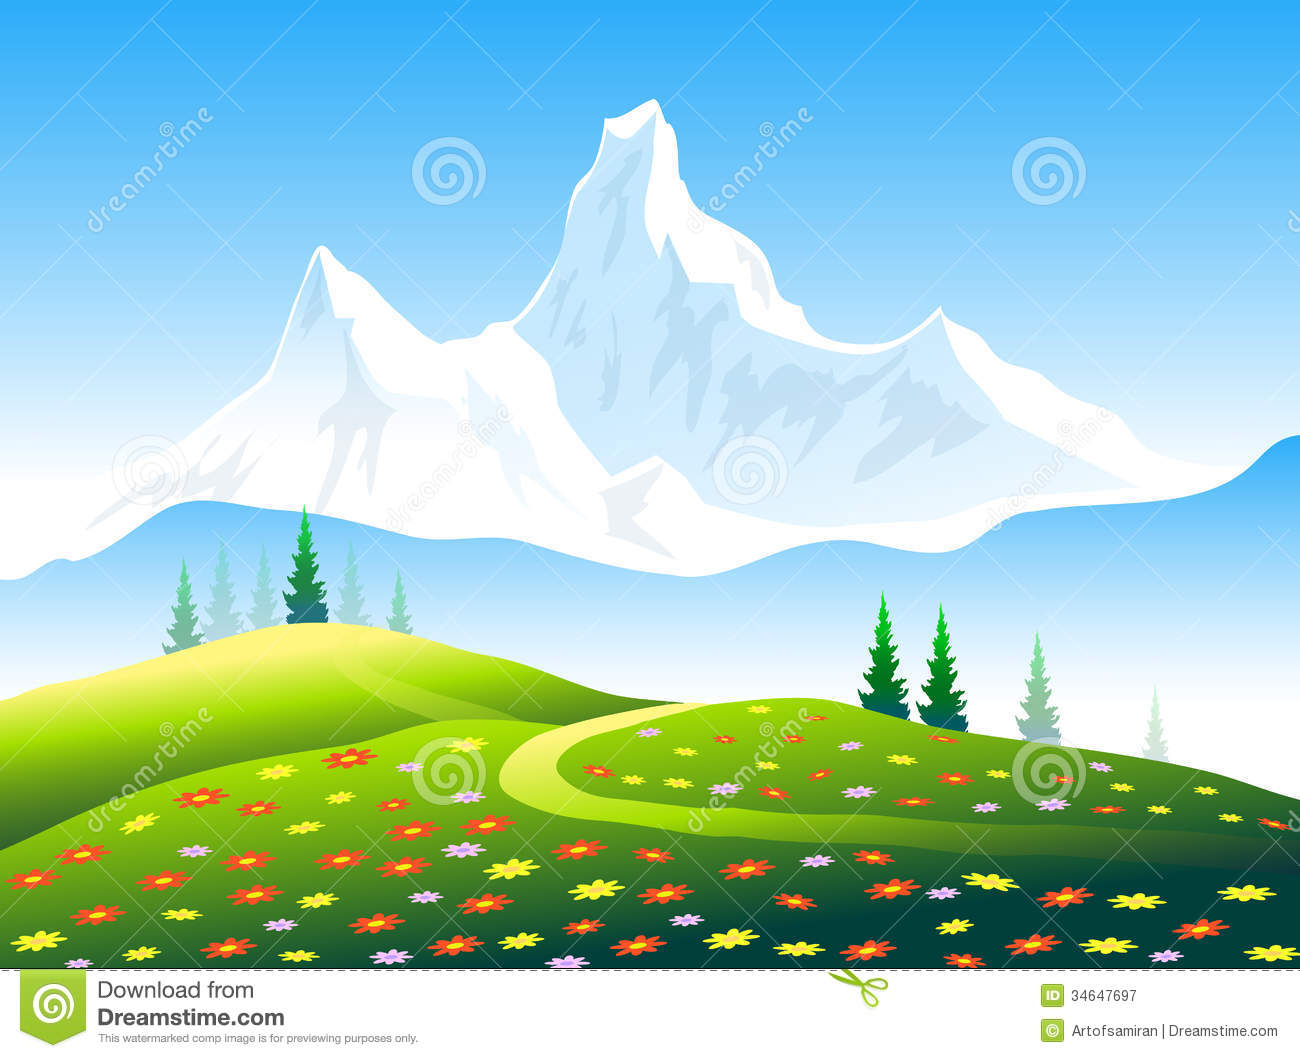 Himalayan mountains clipart.